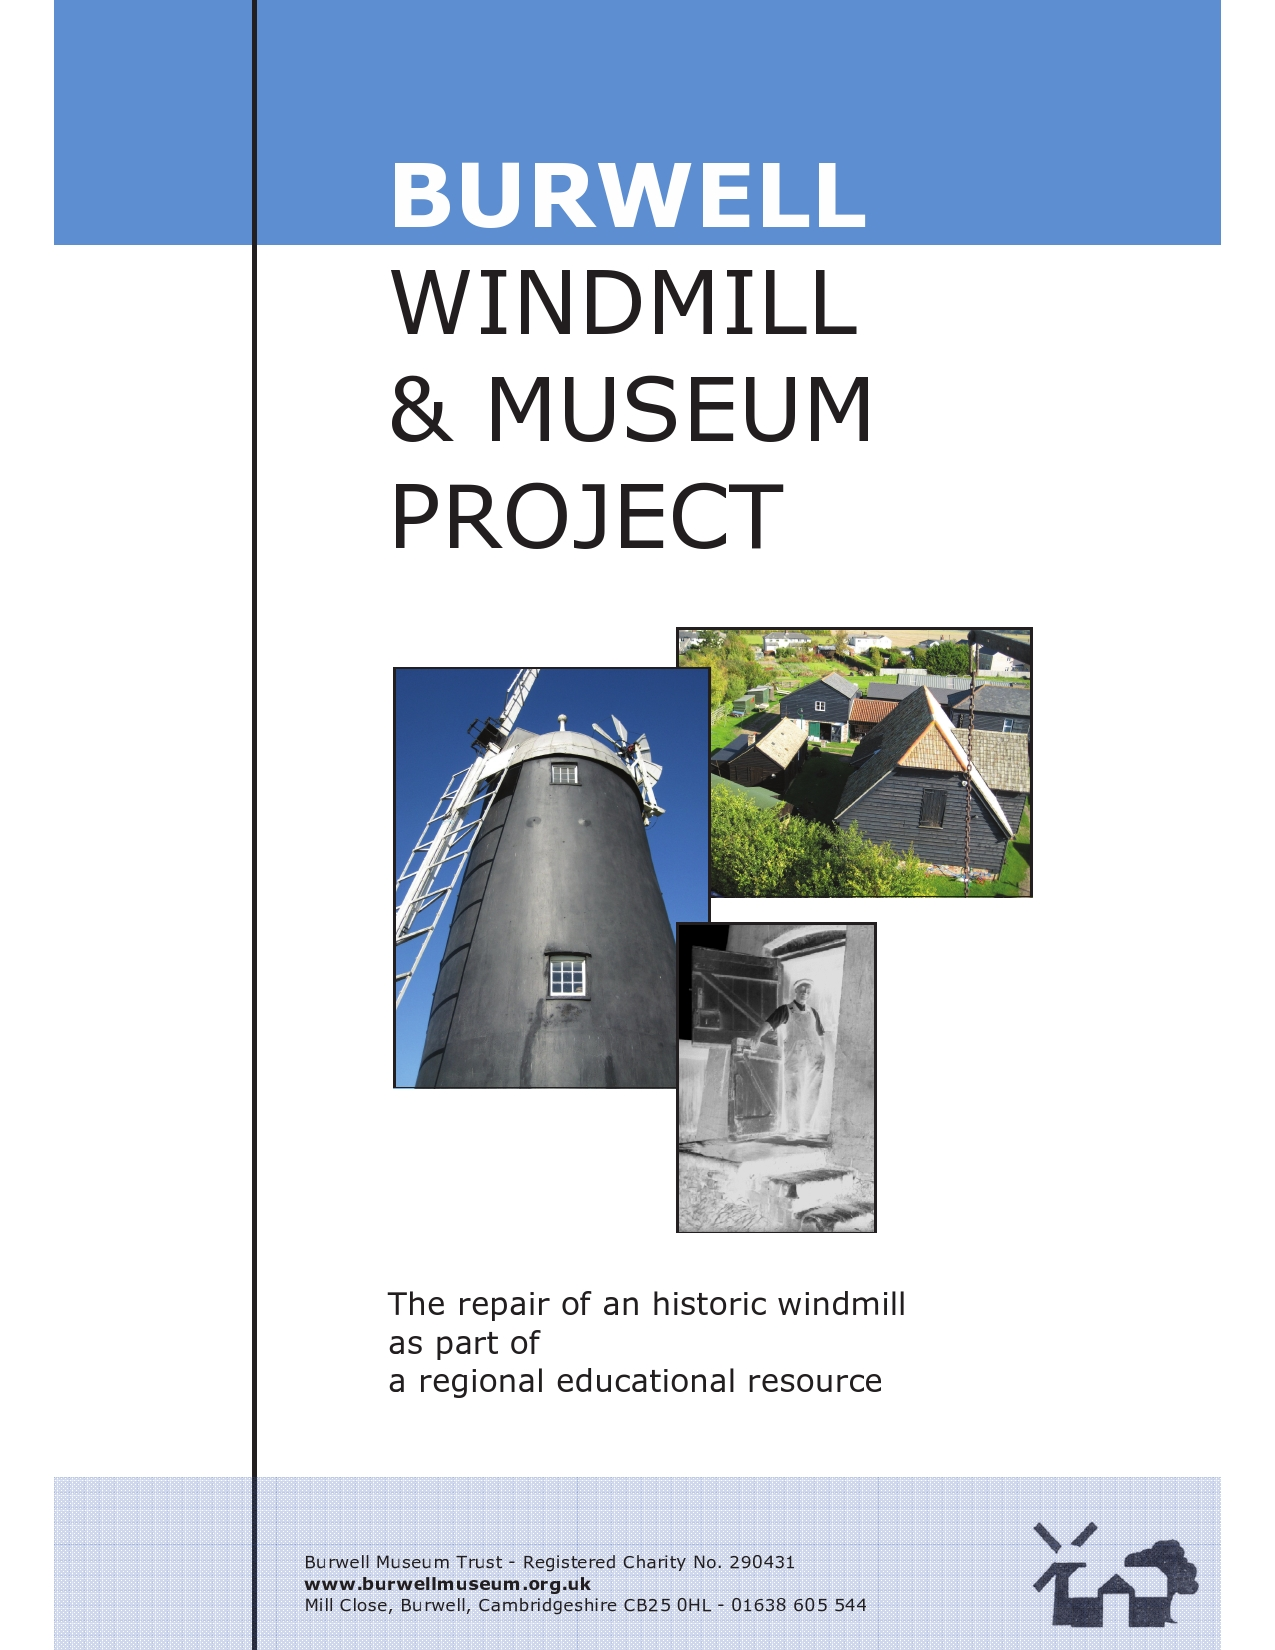 Burwell Windmill Project brochure